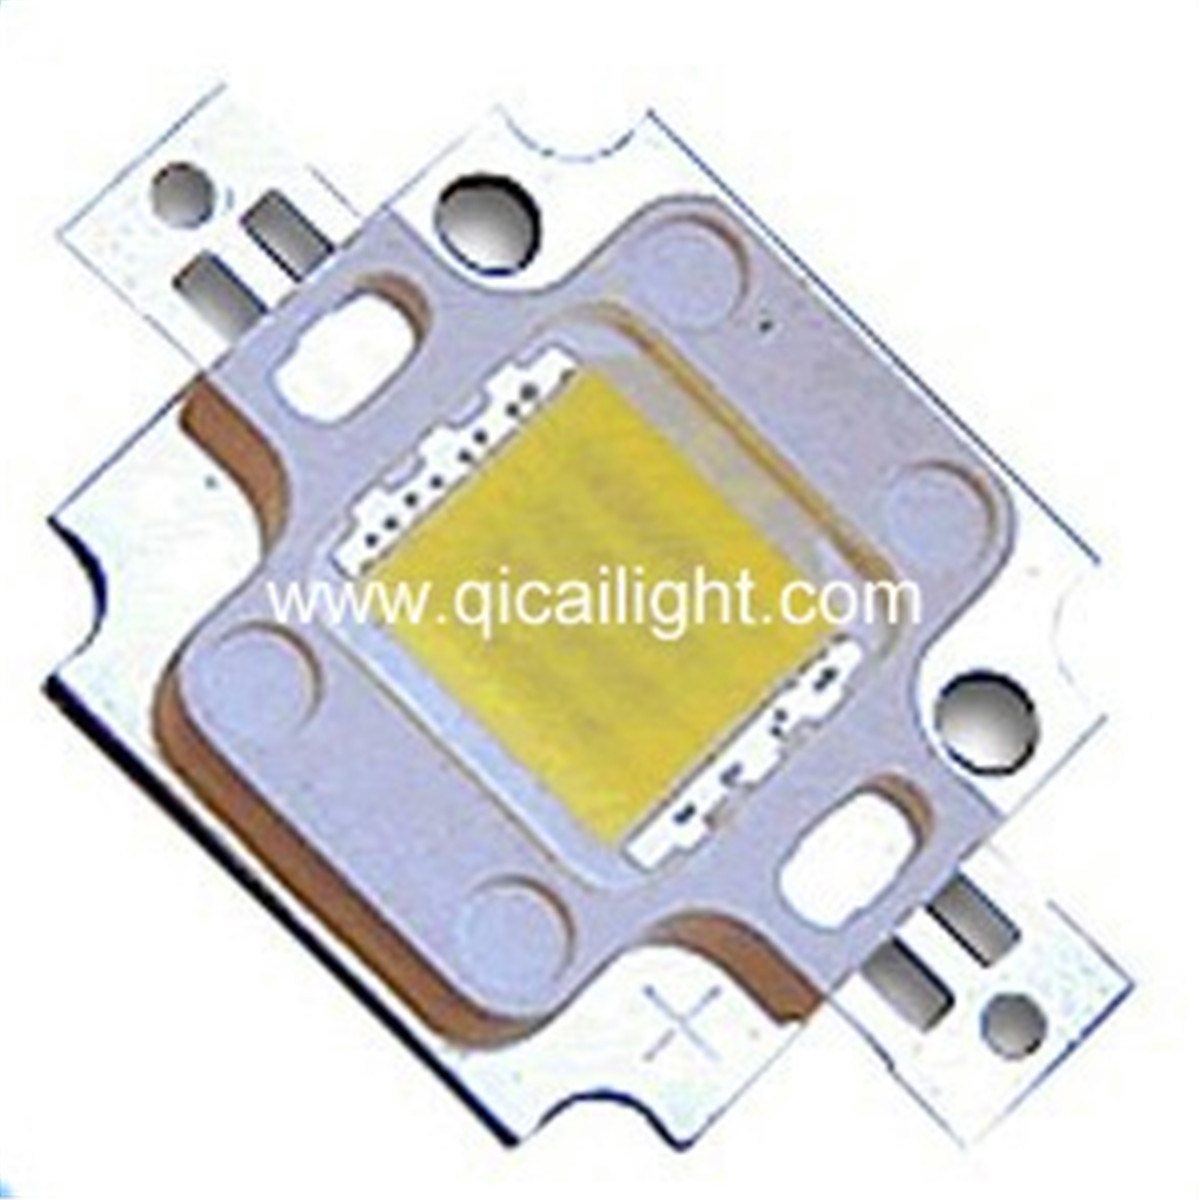 3 in 1 RGB High Power LED